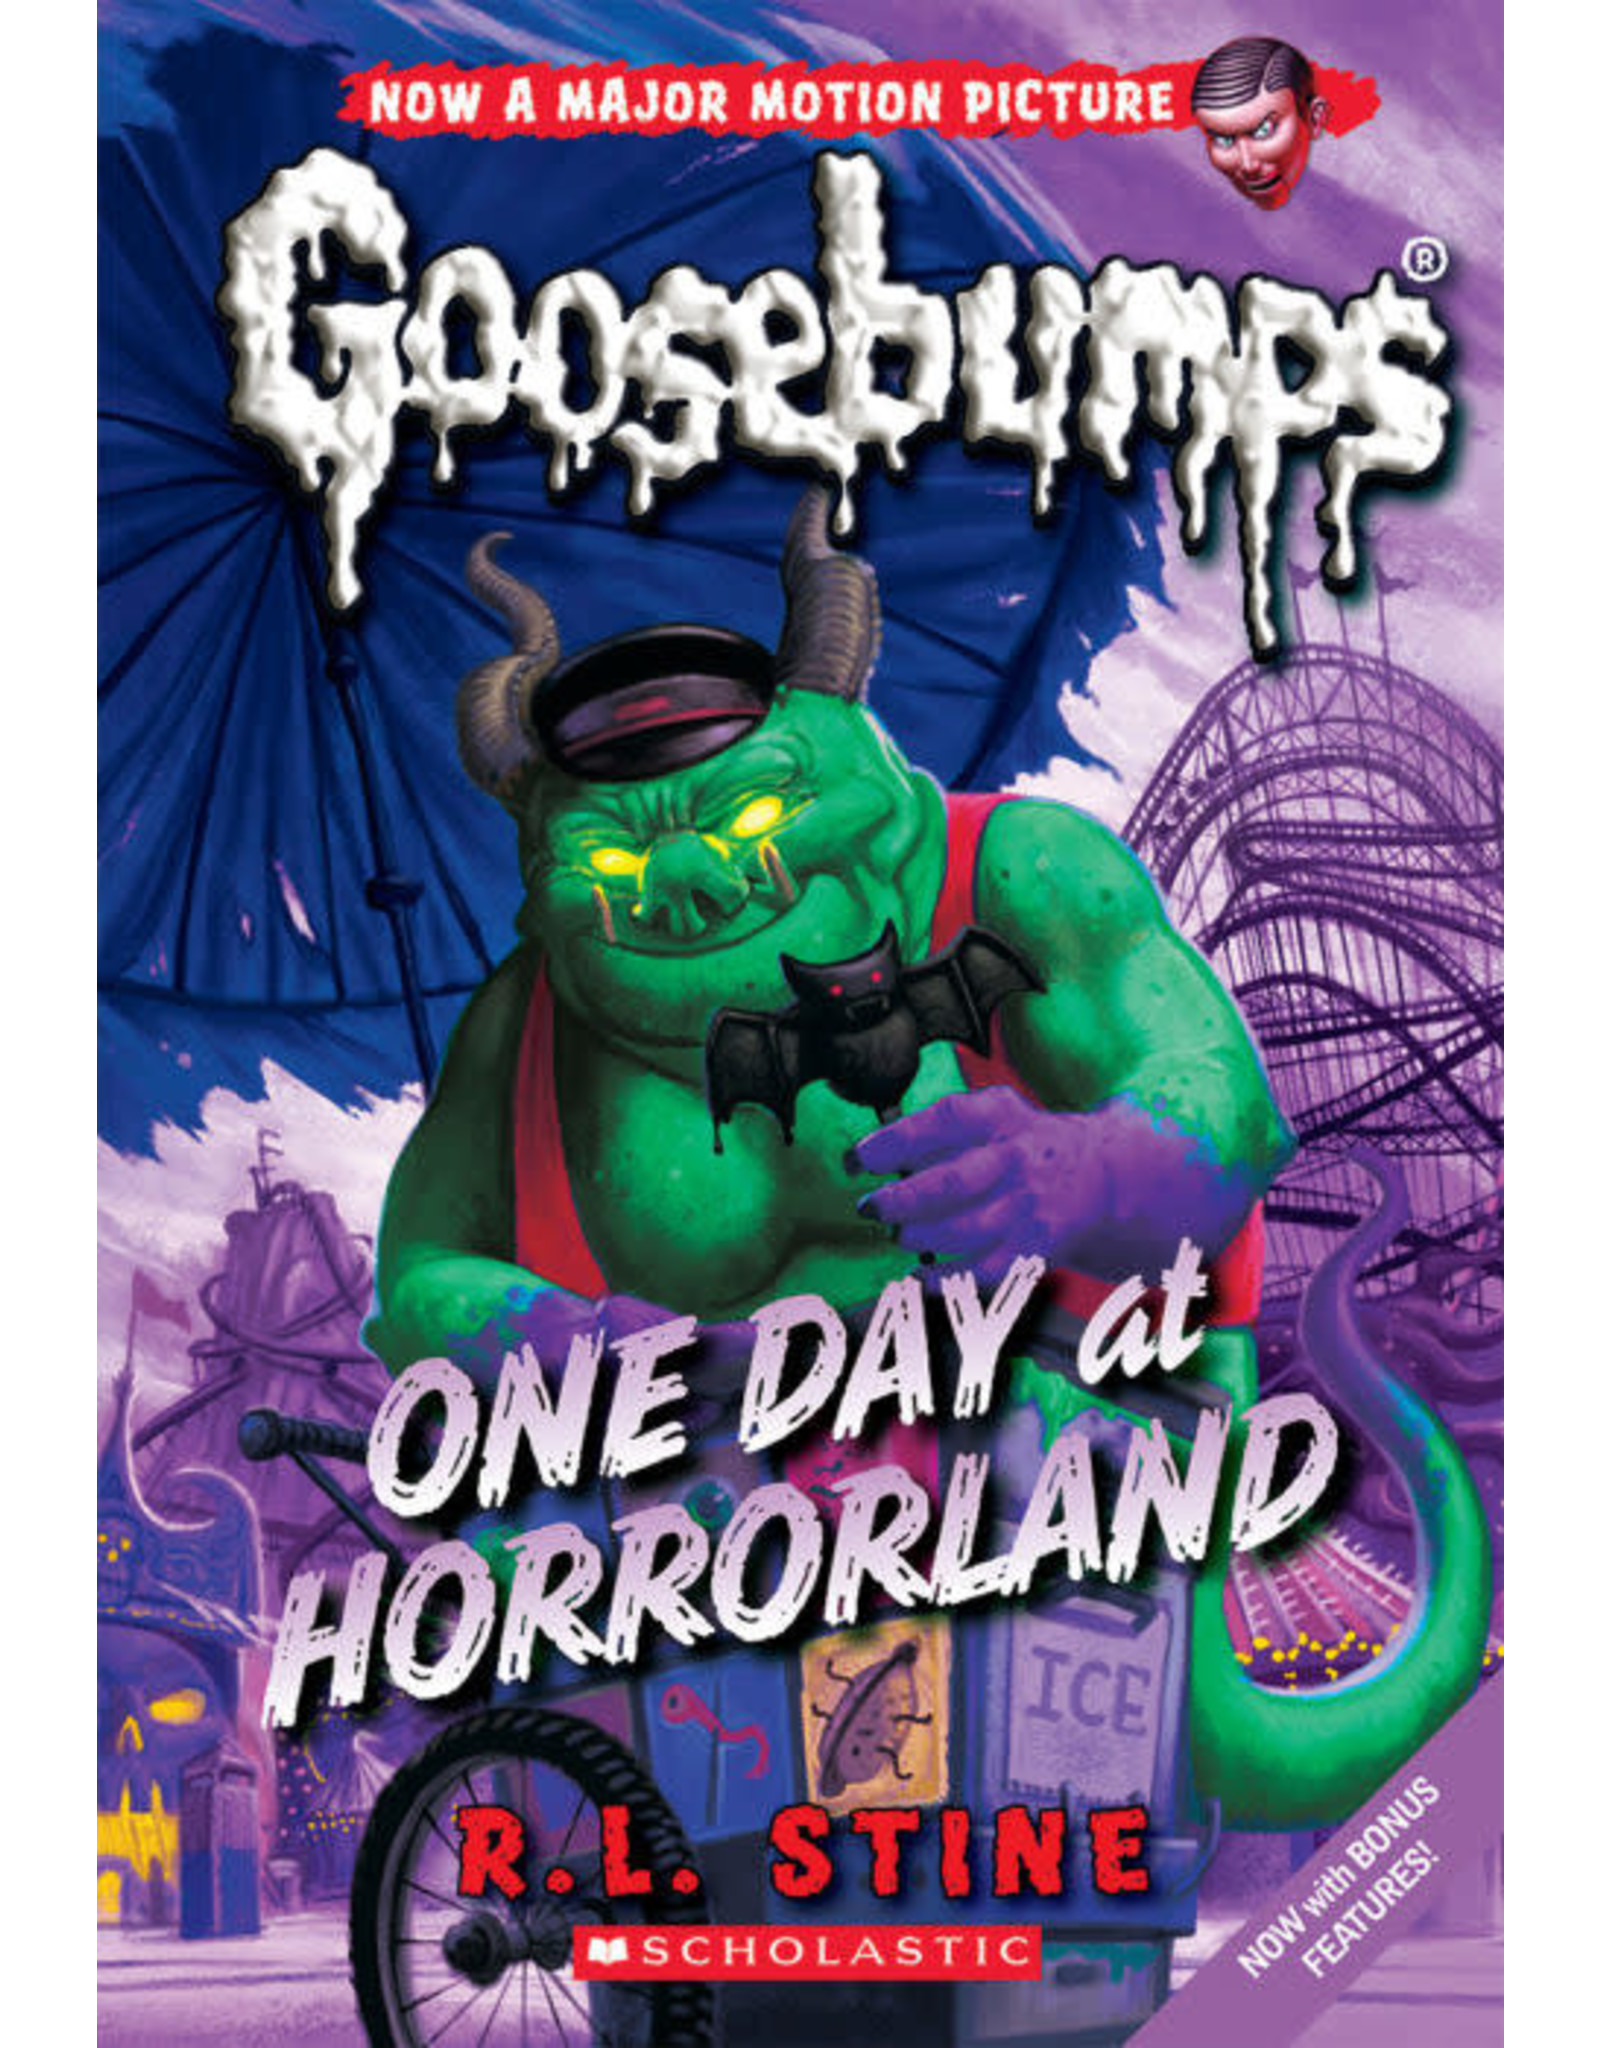 Scholastic Classic Goosebumps #5: One Day at Horrorland